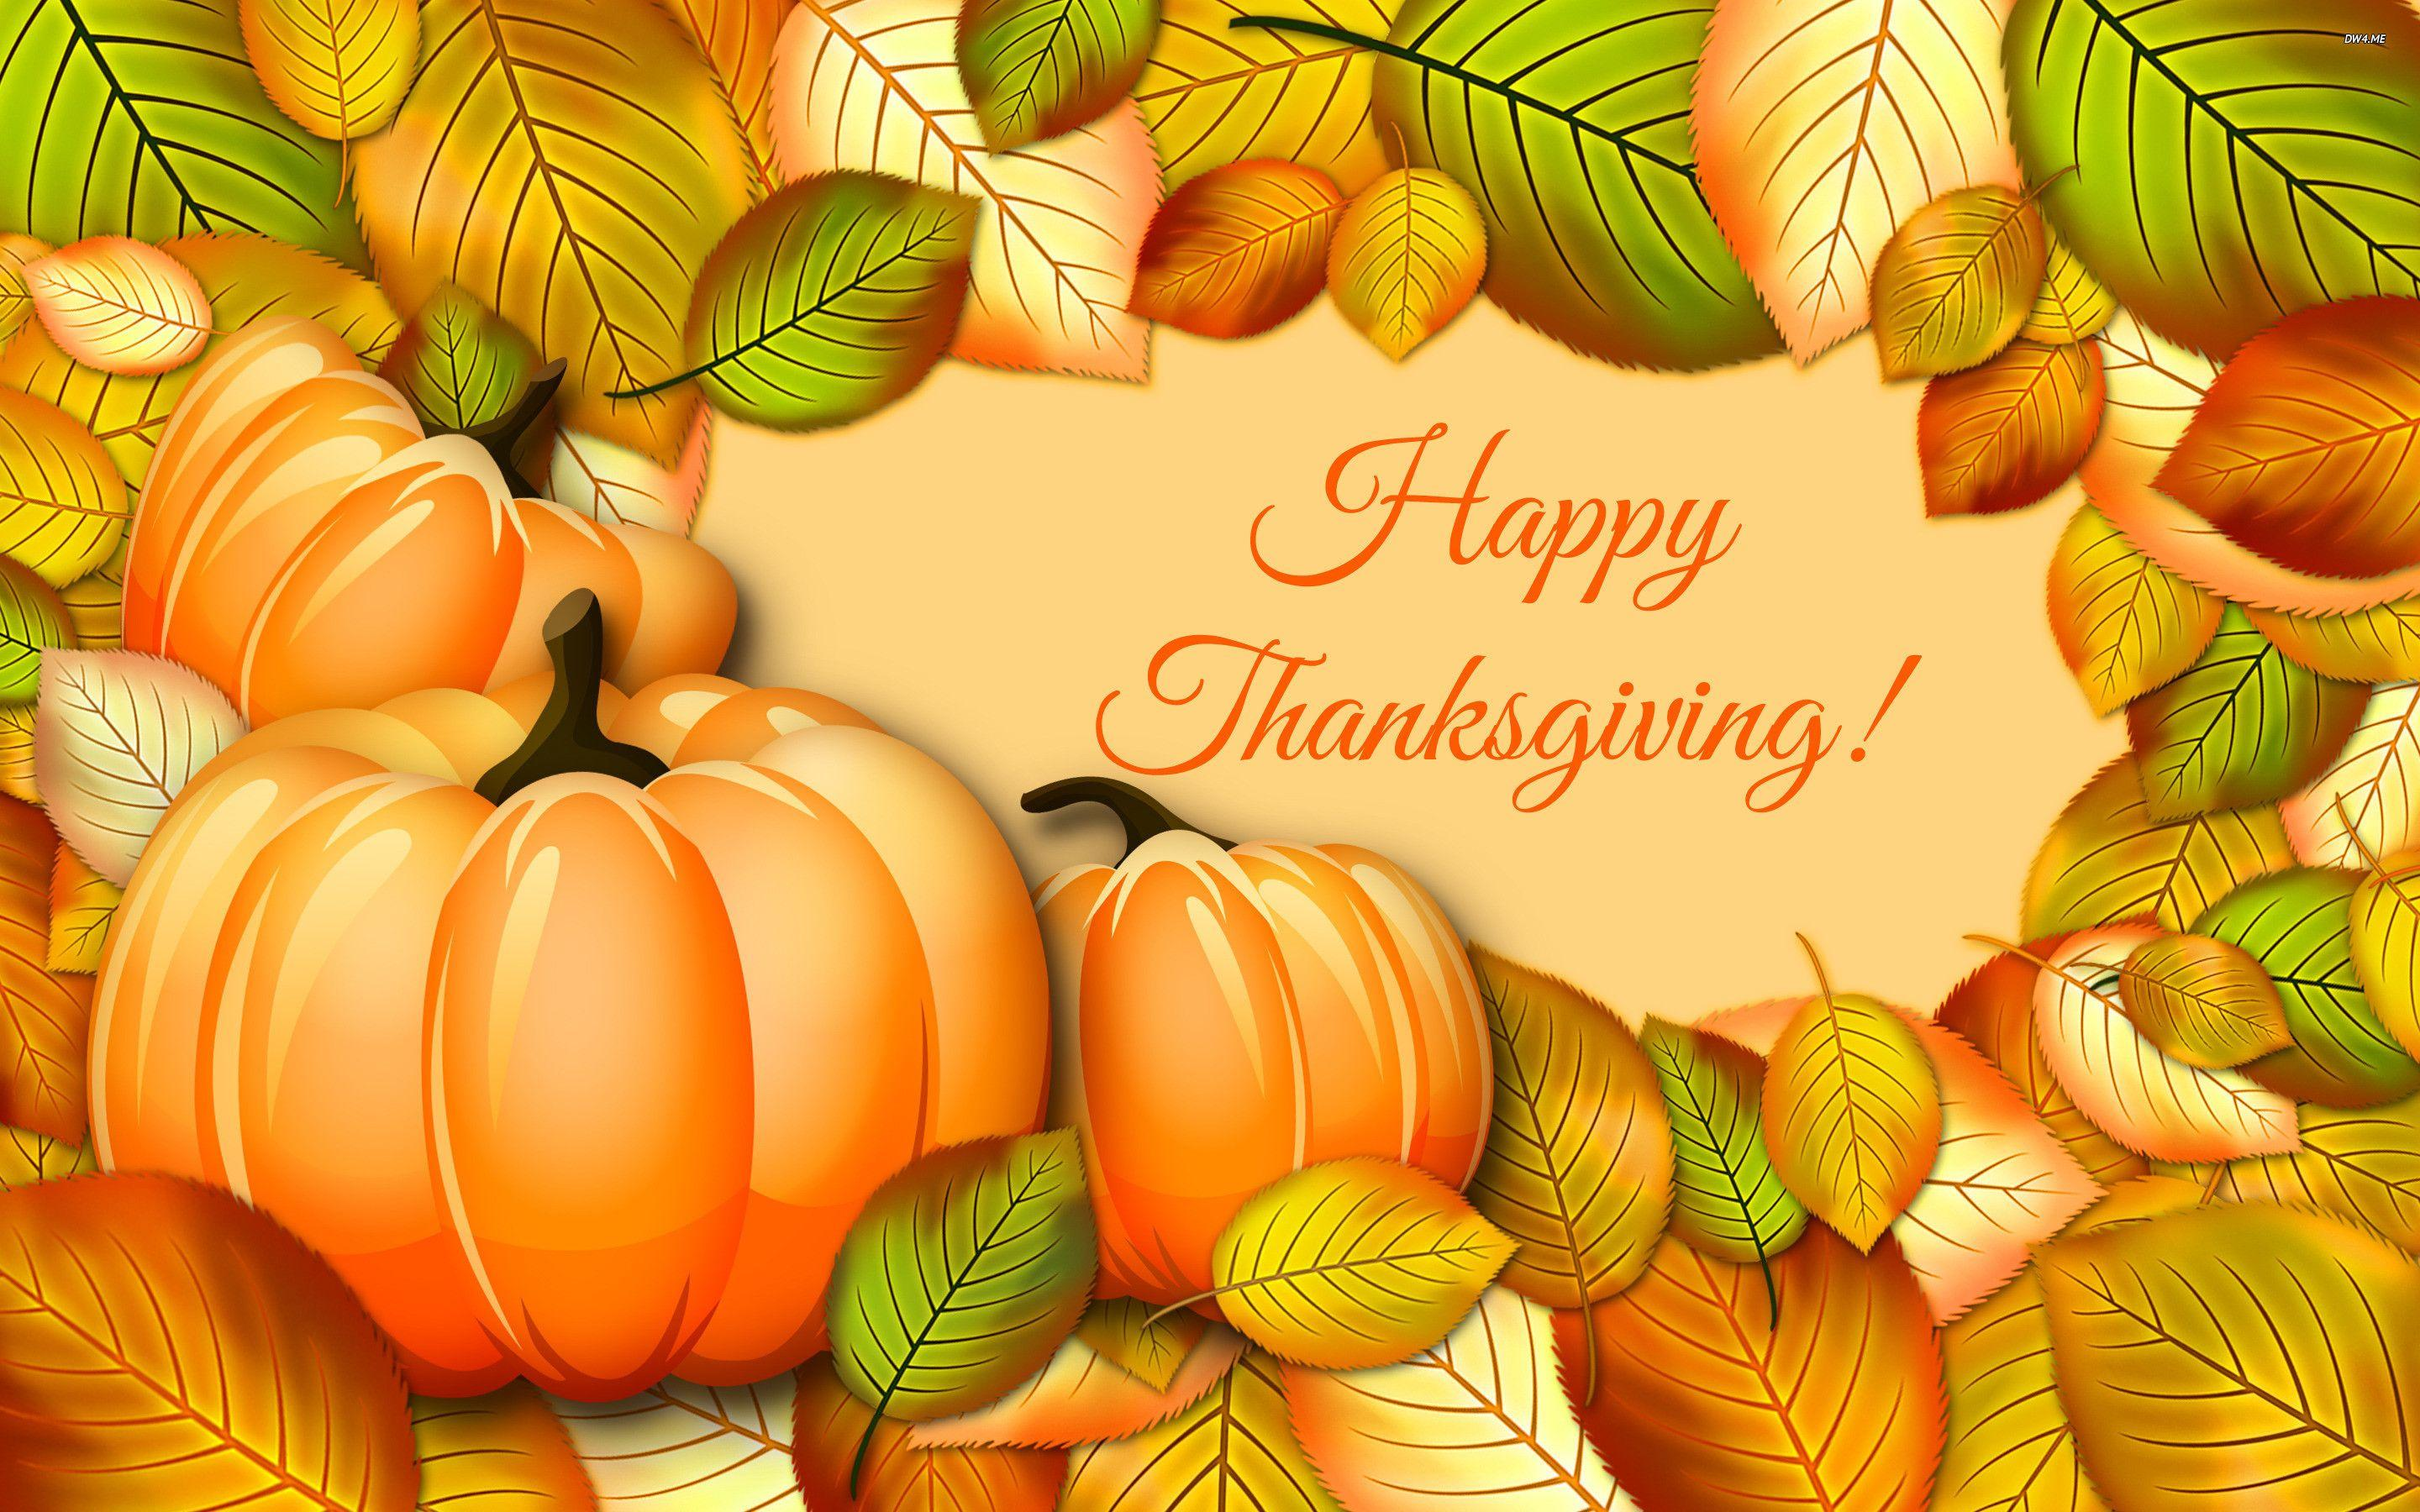 Thanksgiving Wallpapers HD Free Download